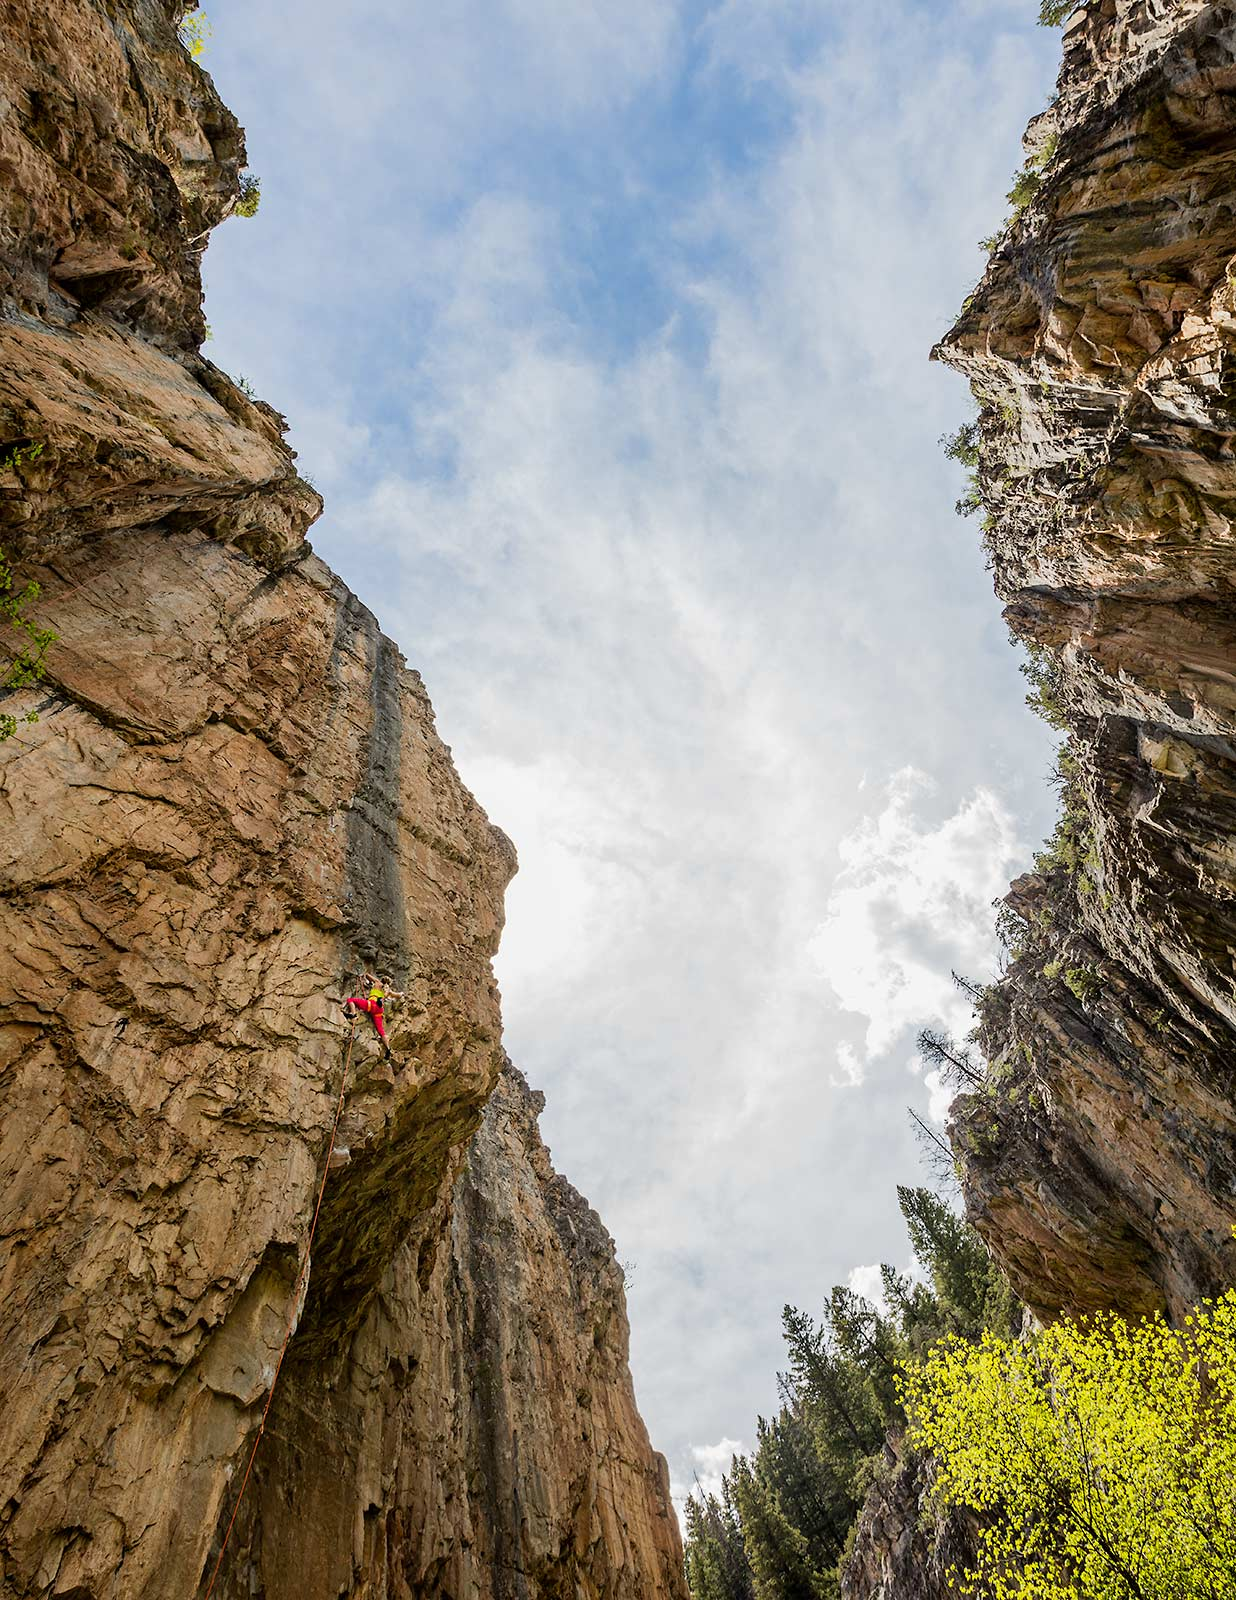 A unique perspective of a professional female rock climber ascending a rock wall